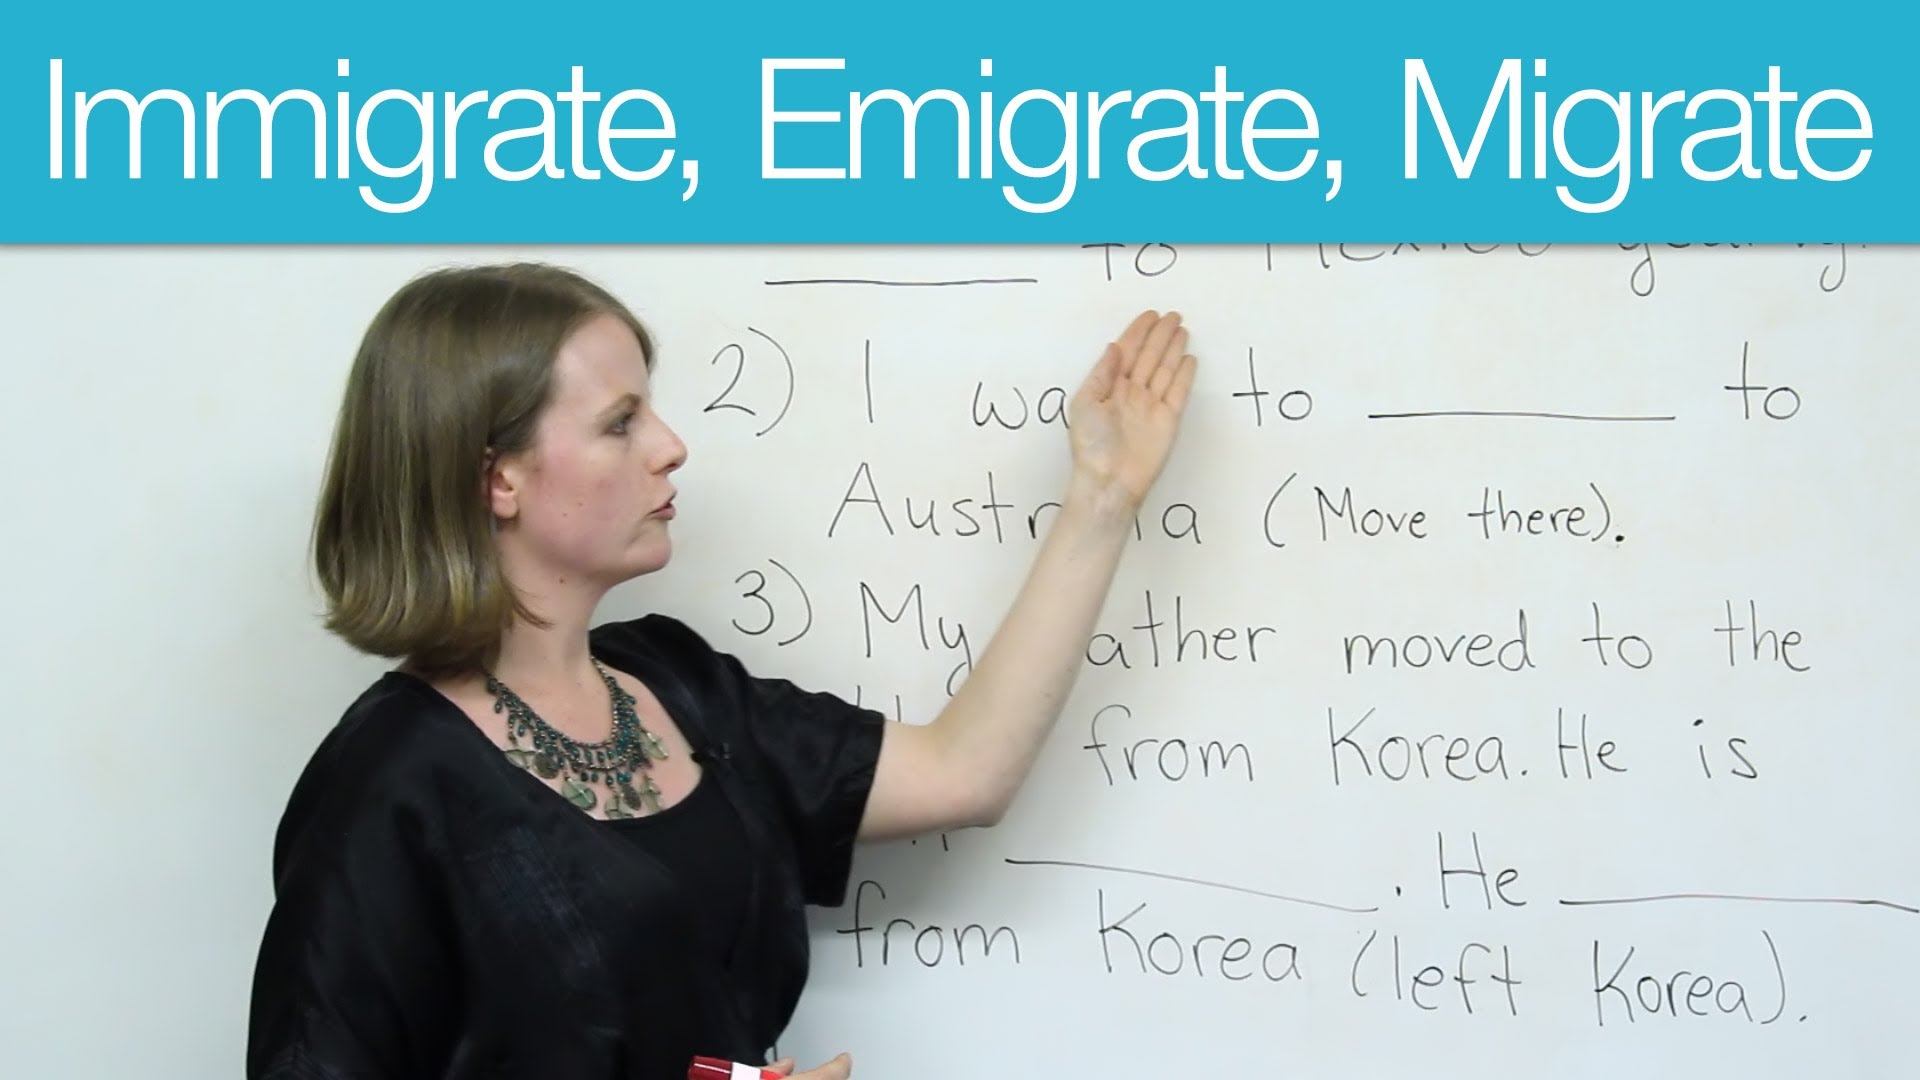 Migration and immigration process which are provided by the Services